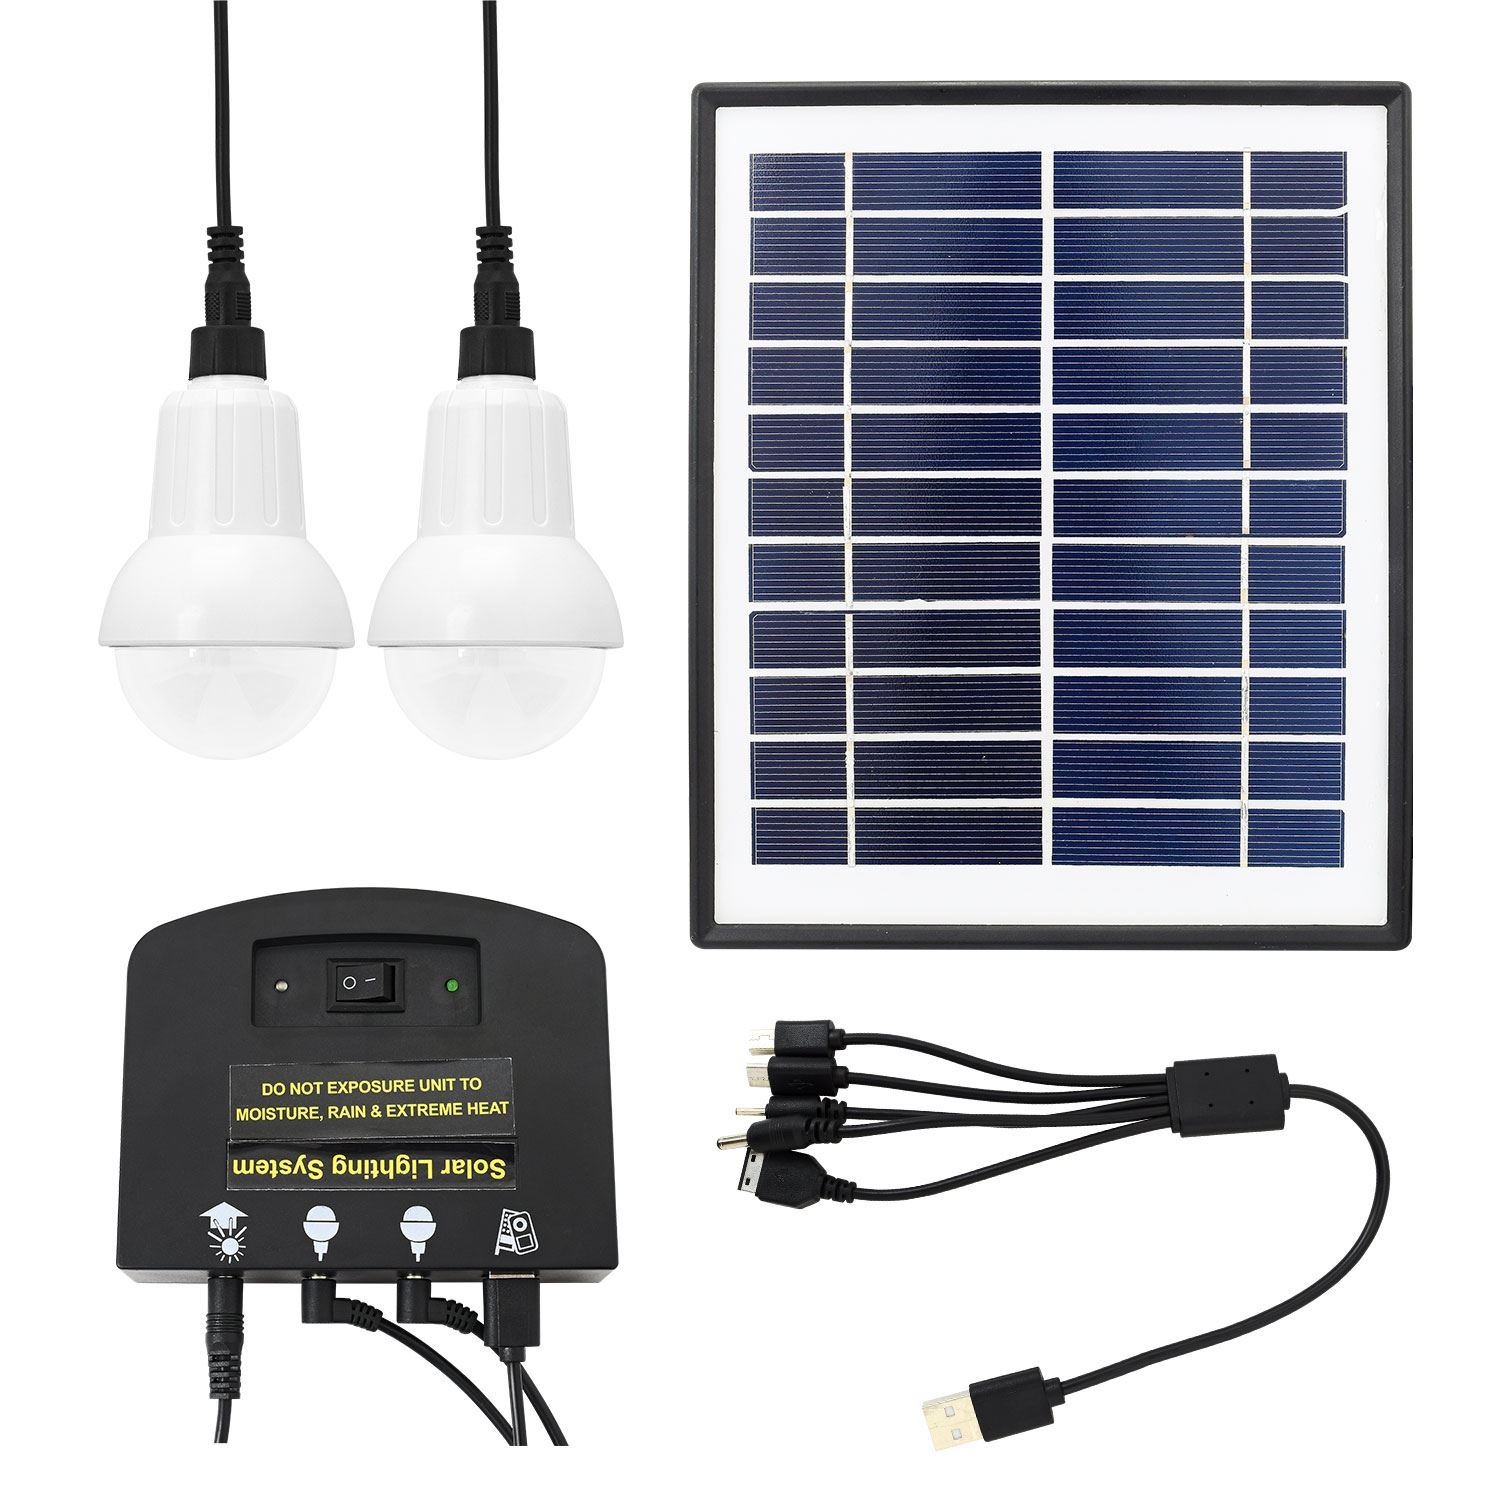 Outdoor 4W Solar Power LED Lighting System Kit USB Charger